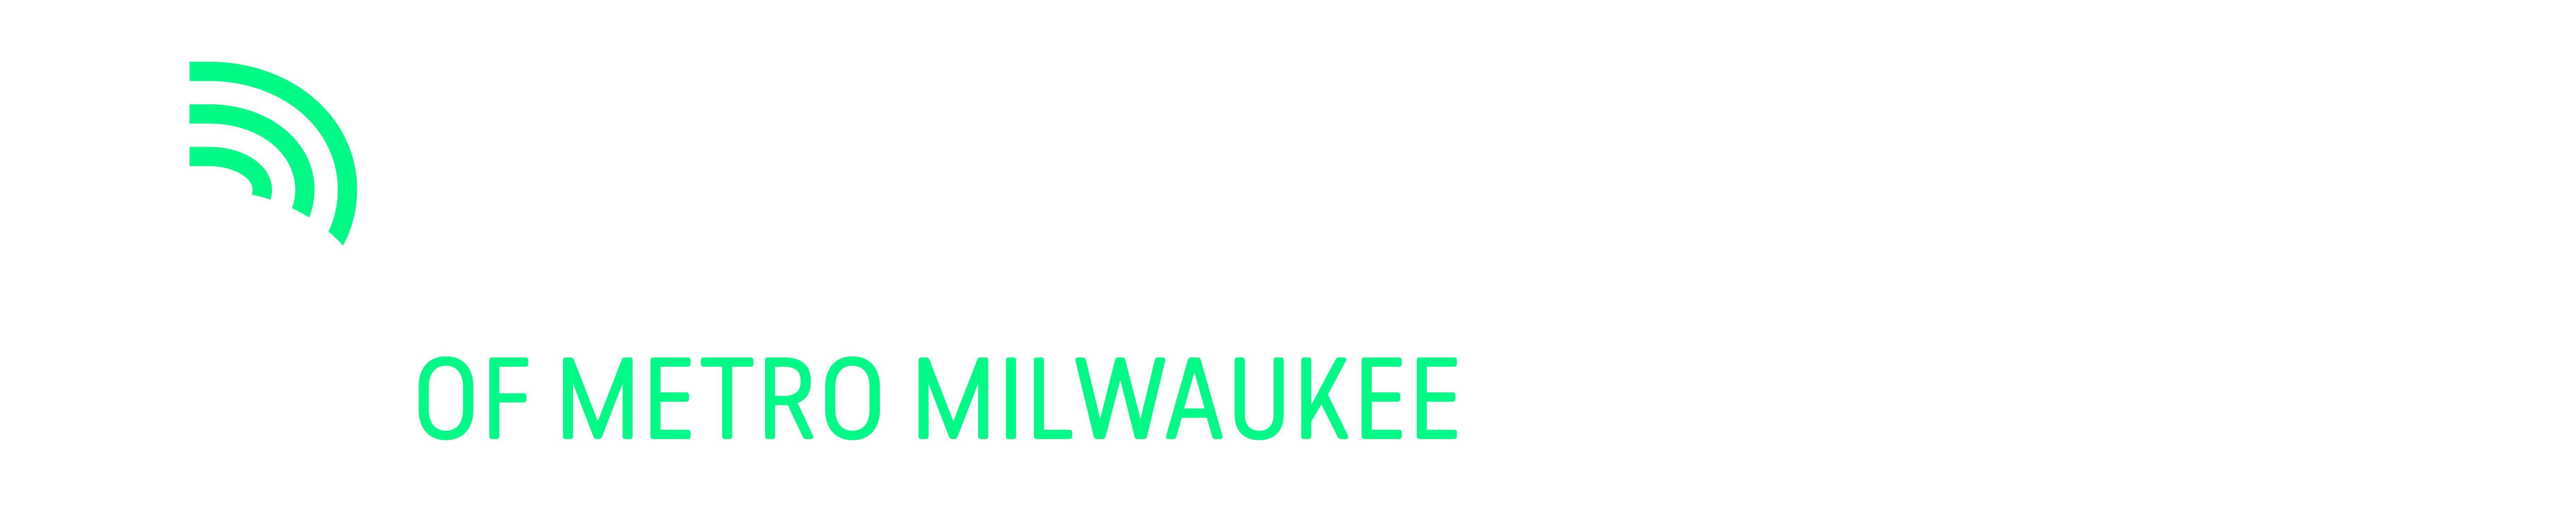 Big Brothers Big Sisters of Metro Milwaukee — Youth Mentoring